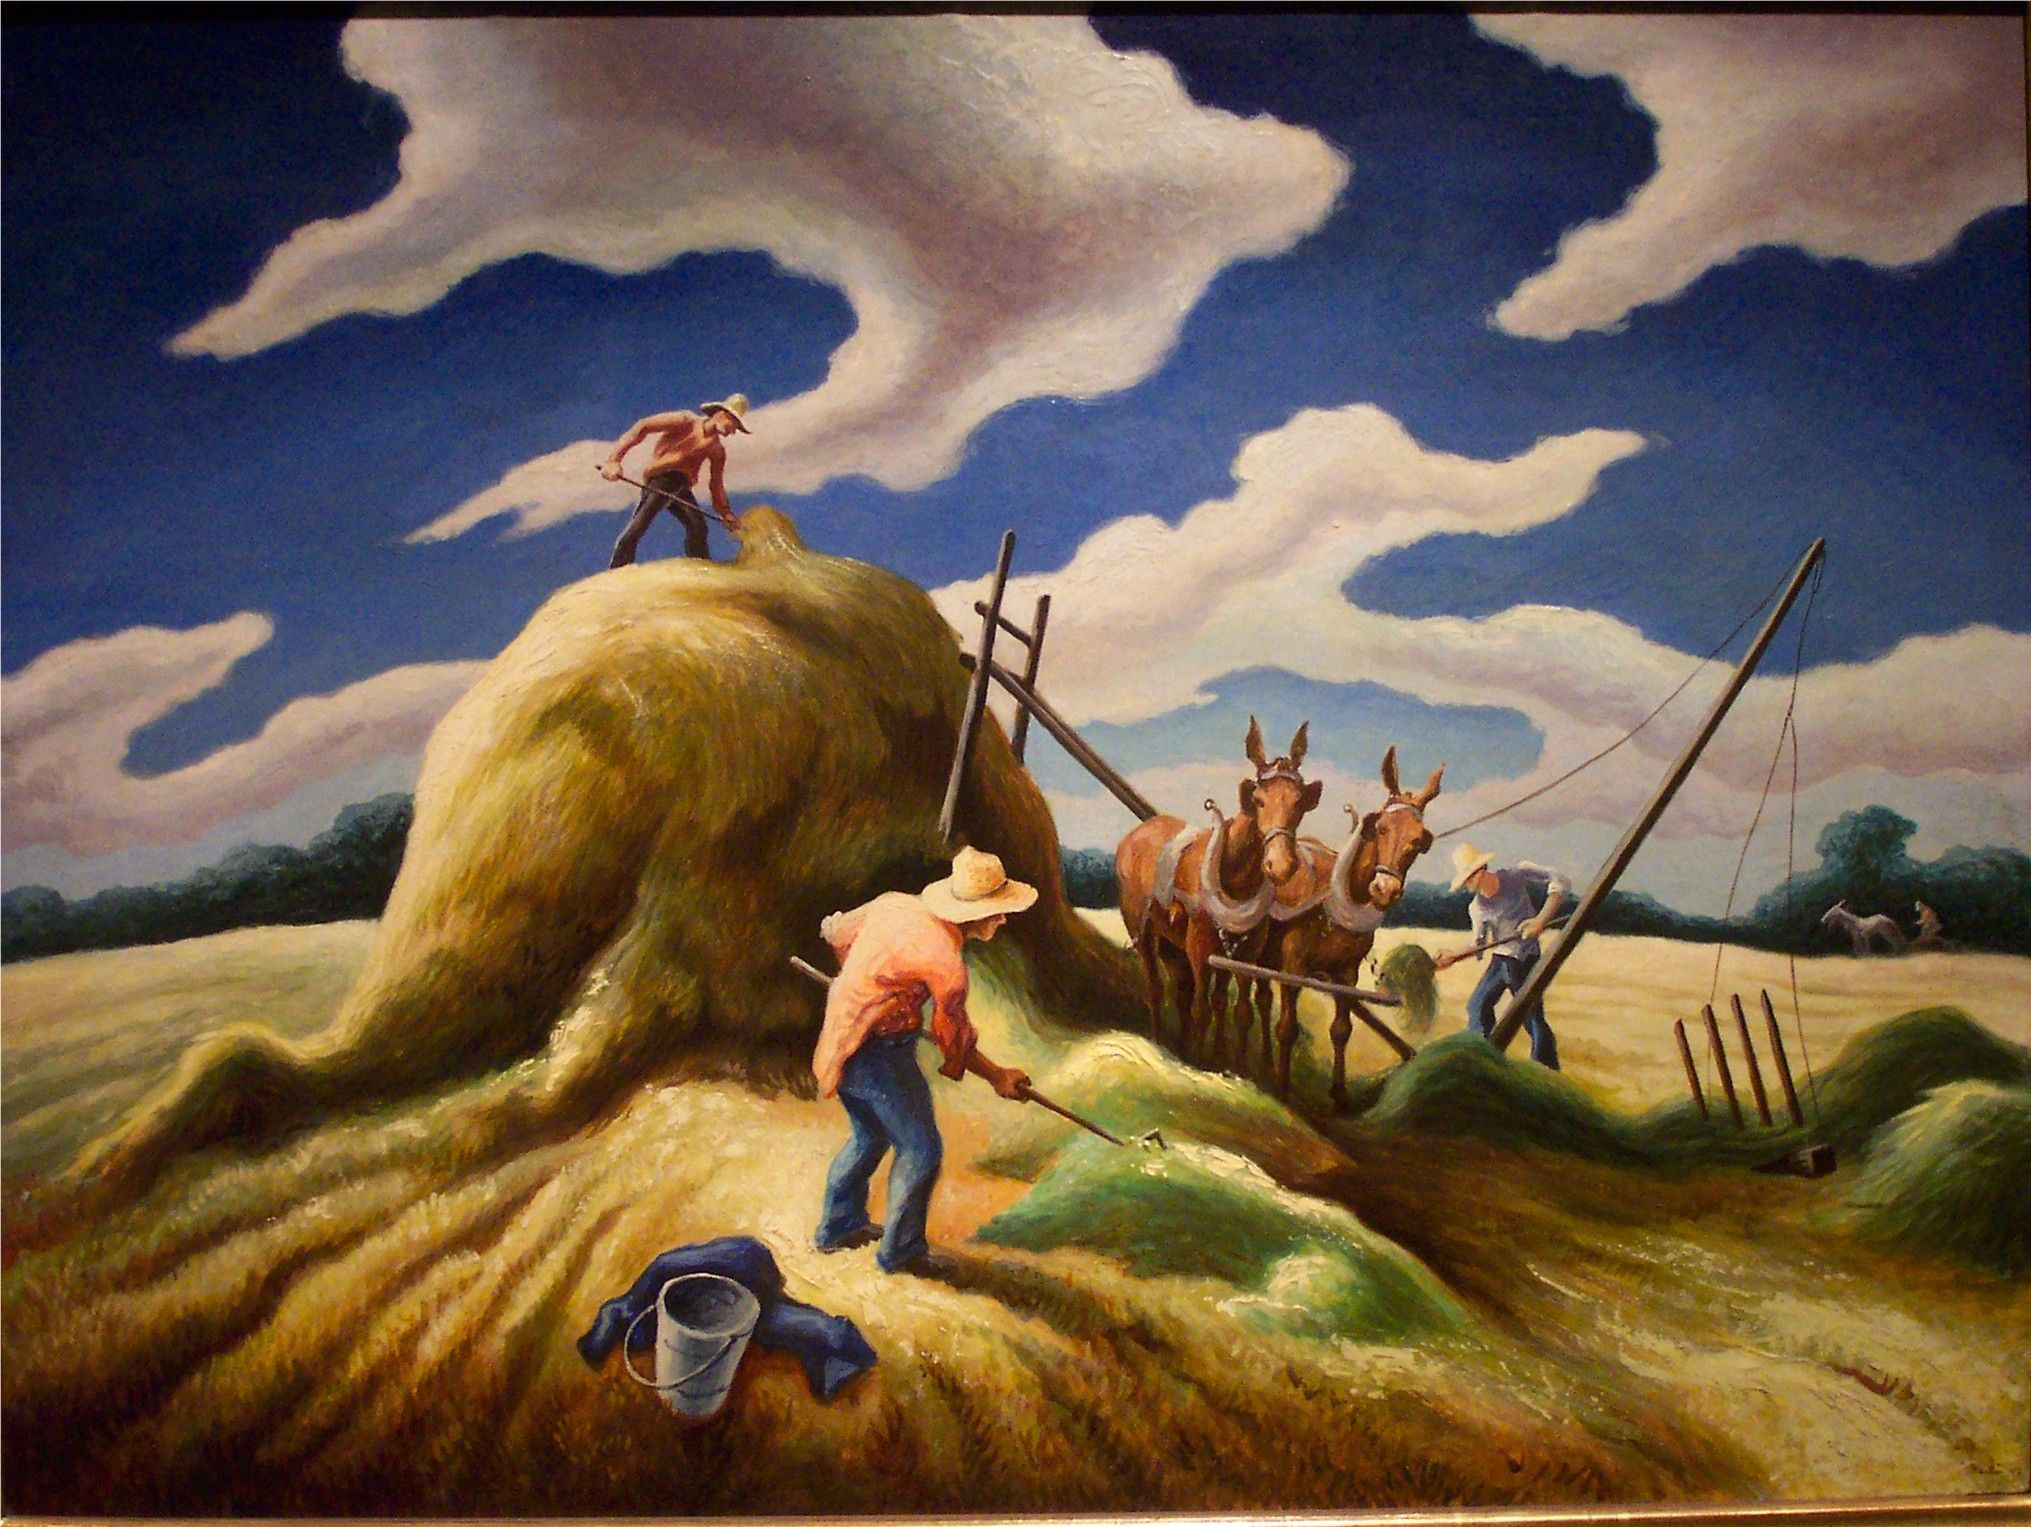 an analysis of cradling wheat a painting by thomas hart benton Study for a painting owned by the dallas art museum  thomas hart benton  cradling wheat read more show details.